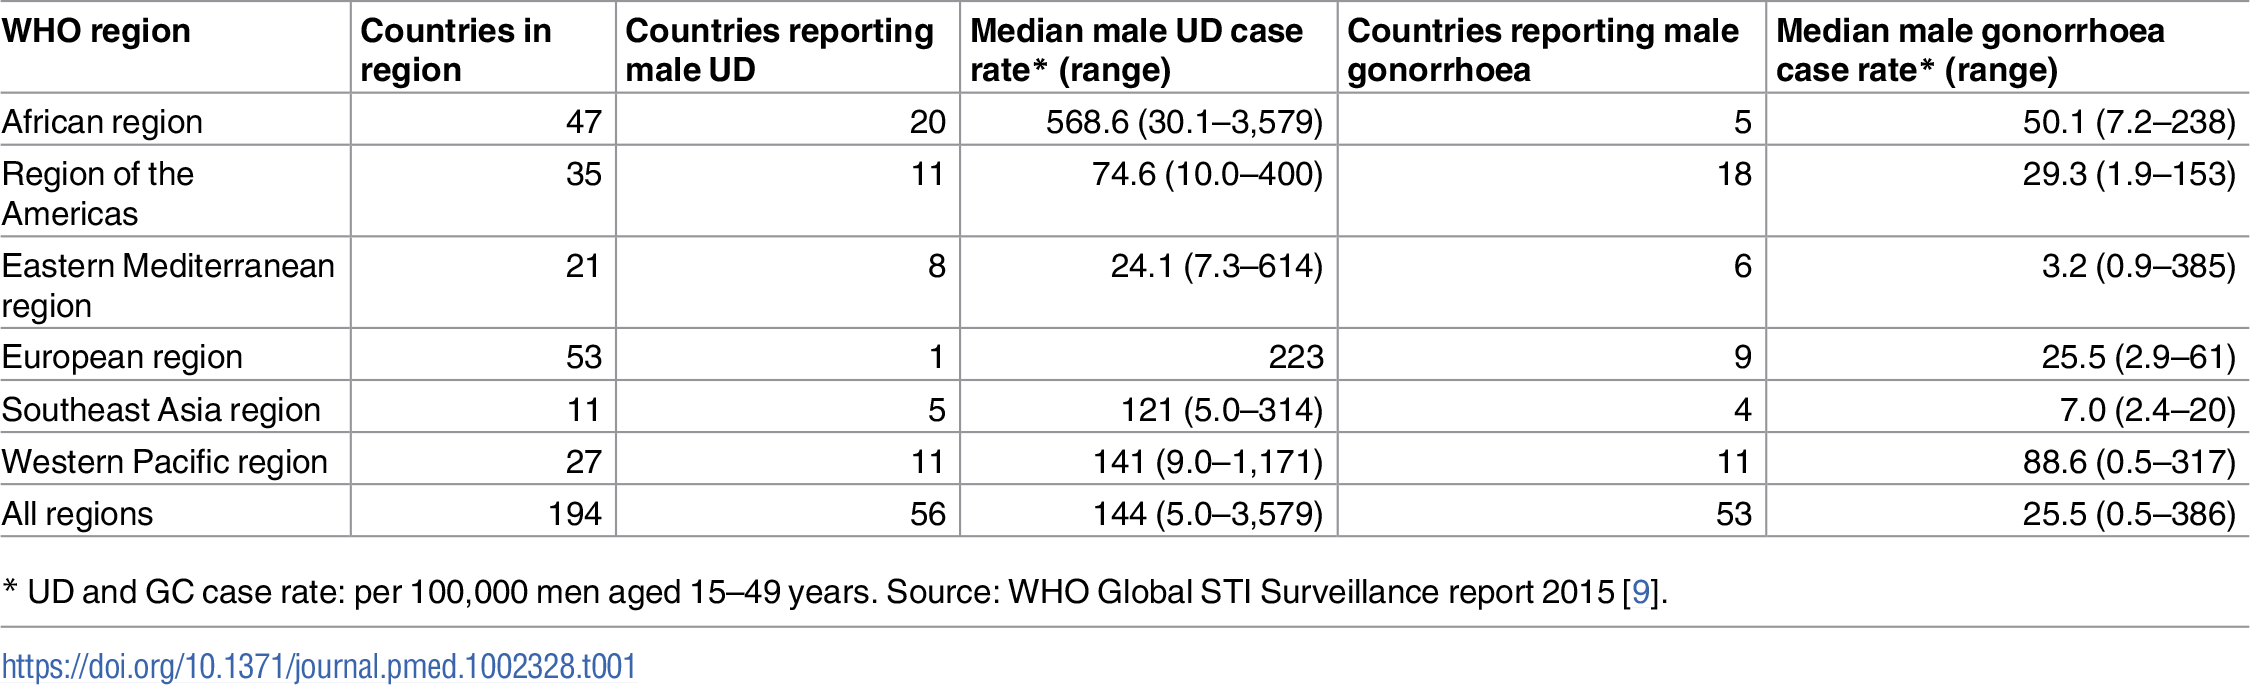 Male urethral discharge (UD) rate and male gonorrhoea case reporting rates by region, 2014.